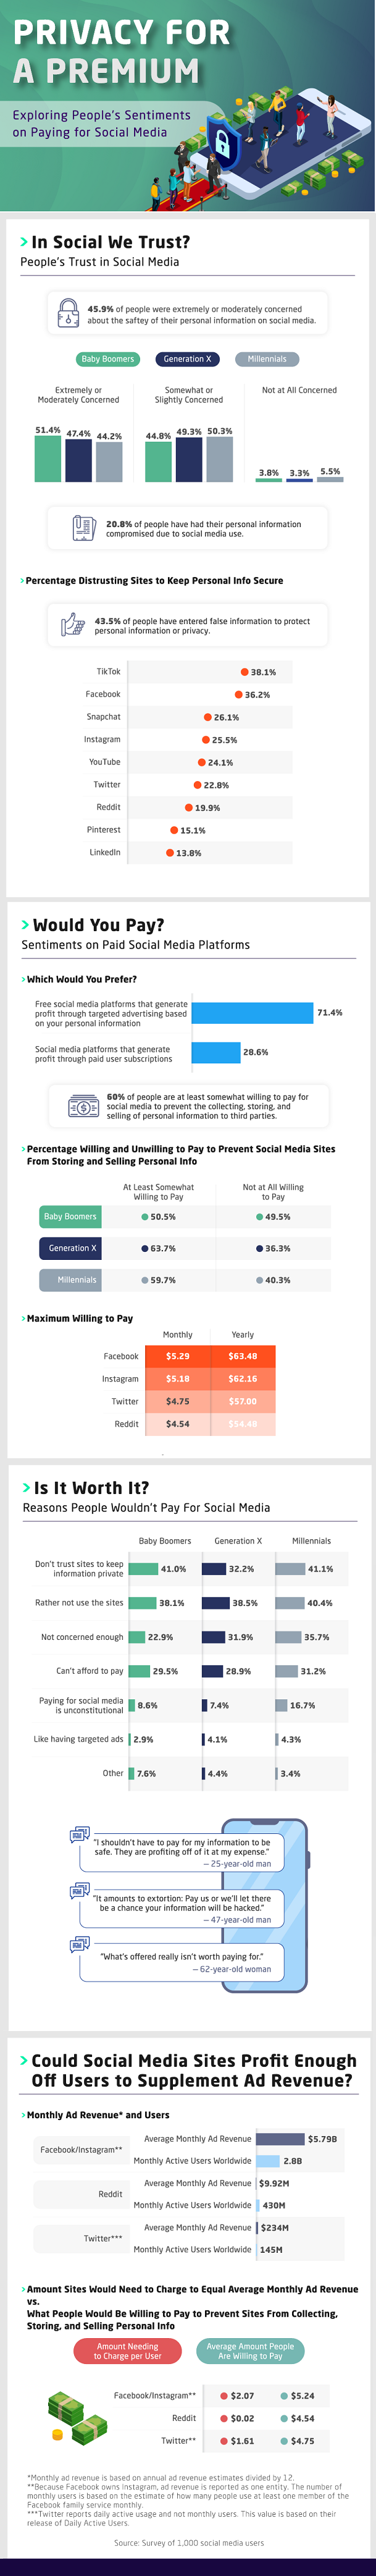 Infographic looking at whether or not people will pay for social media..